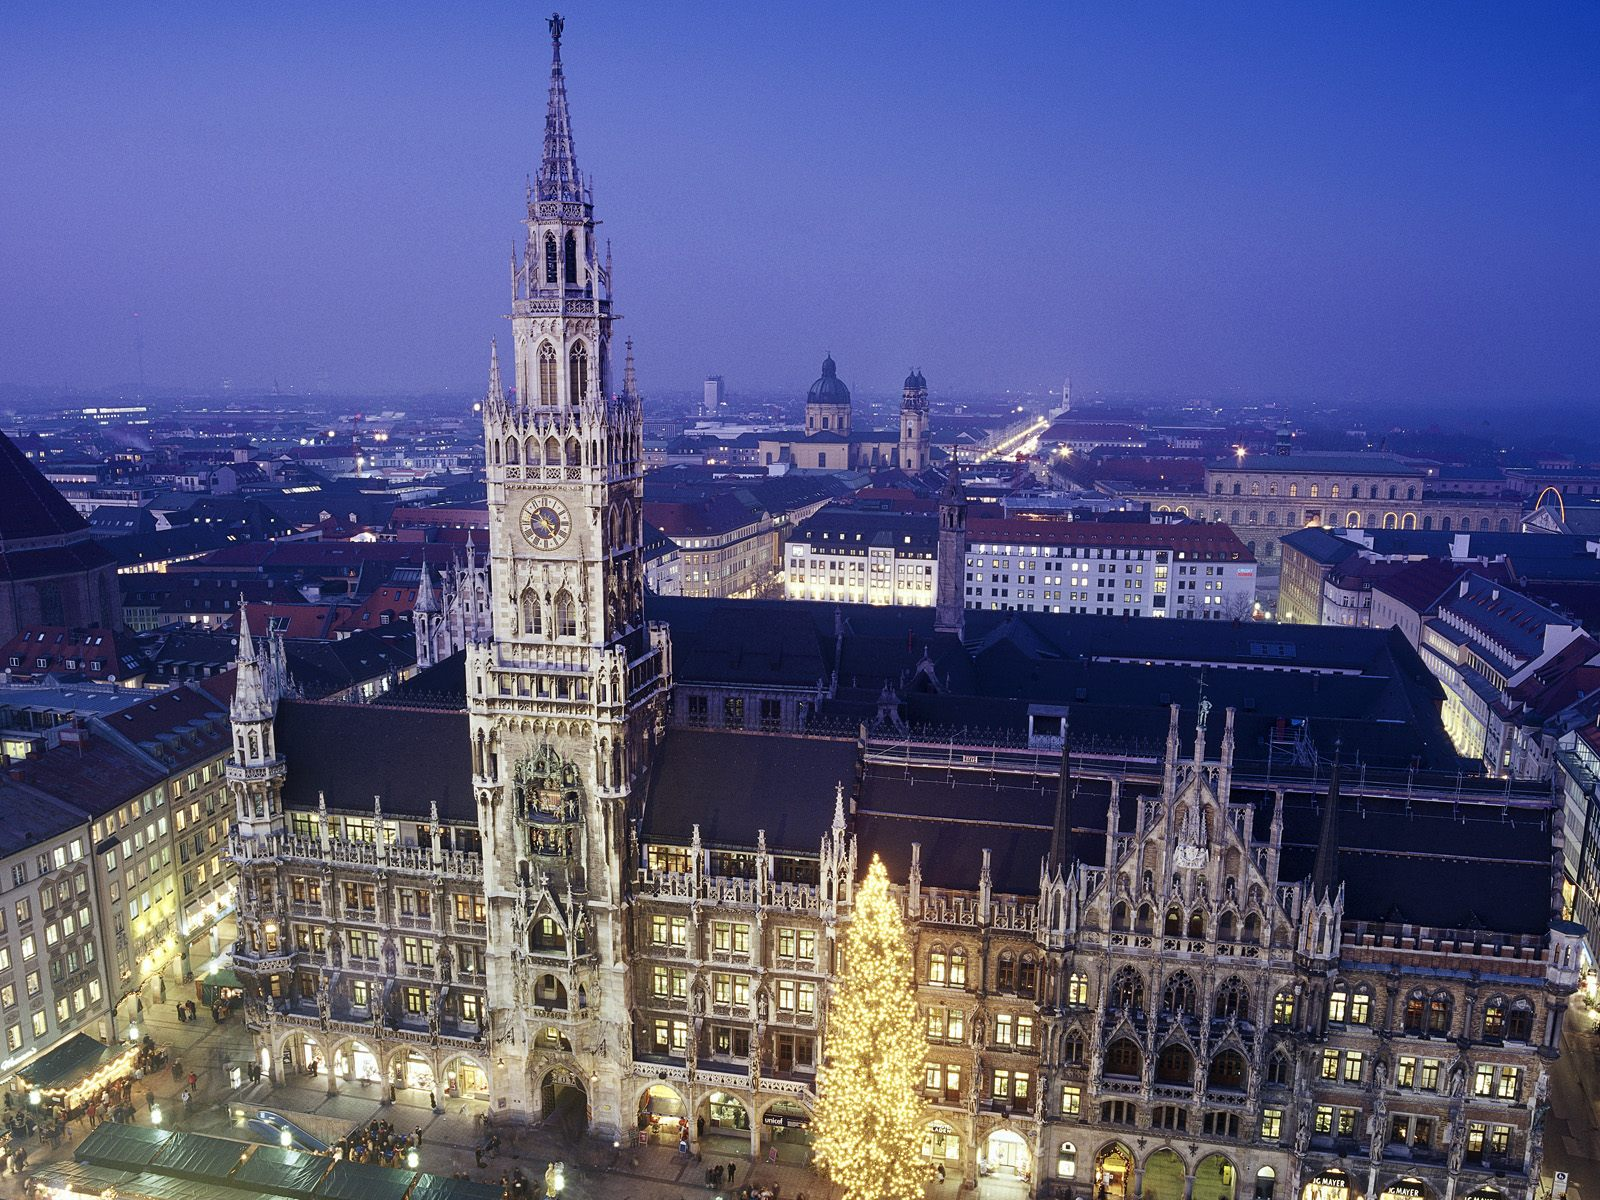 New Town Hall Munich 1600 x 1200